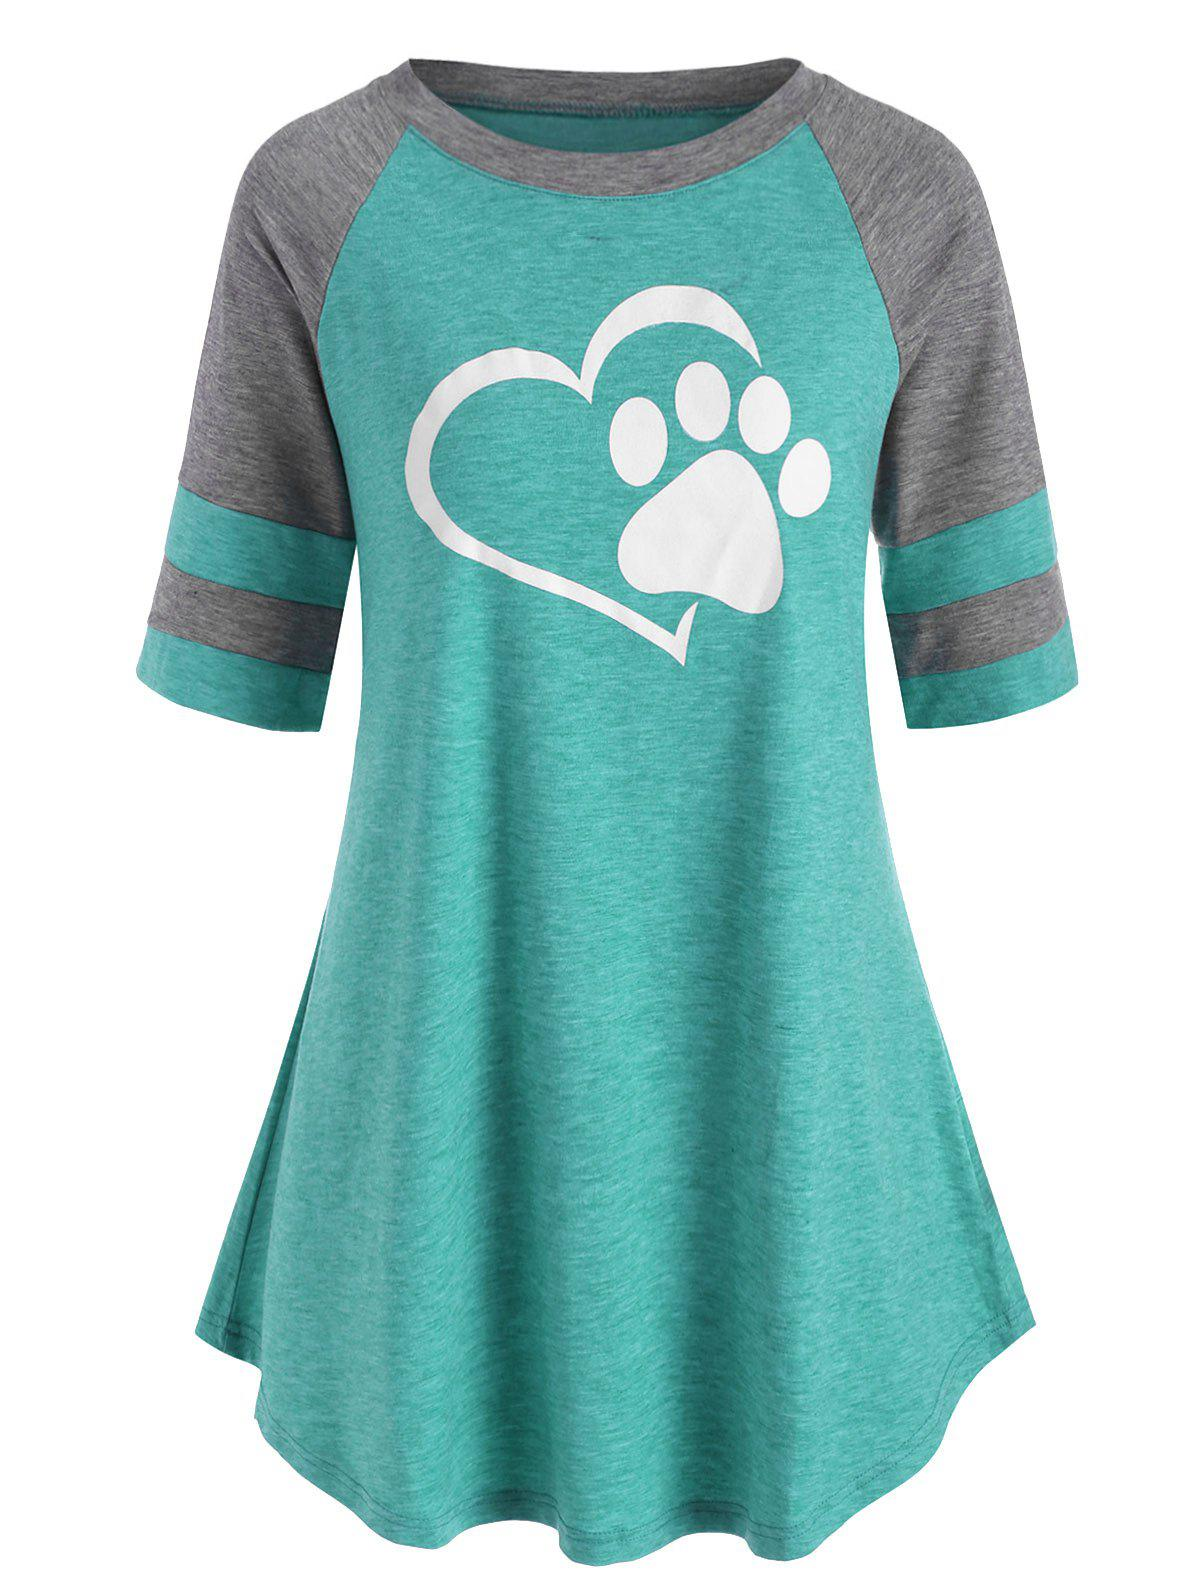 Plus Size Contrast Color Raglan Sleeve Graphic T Shirt Rosegal